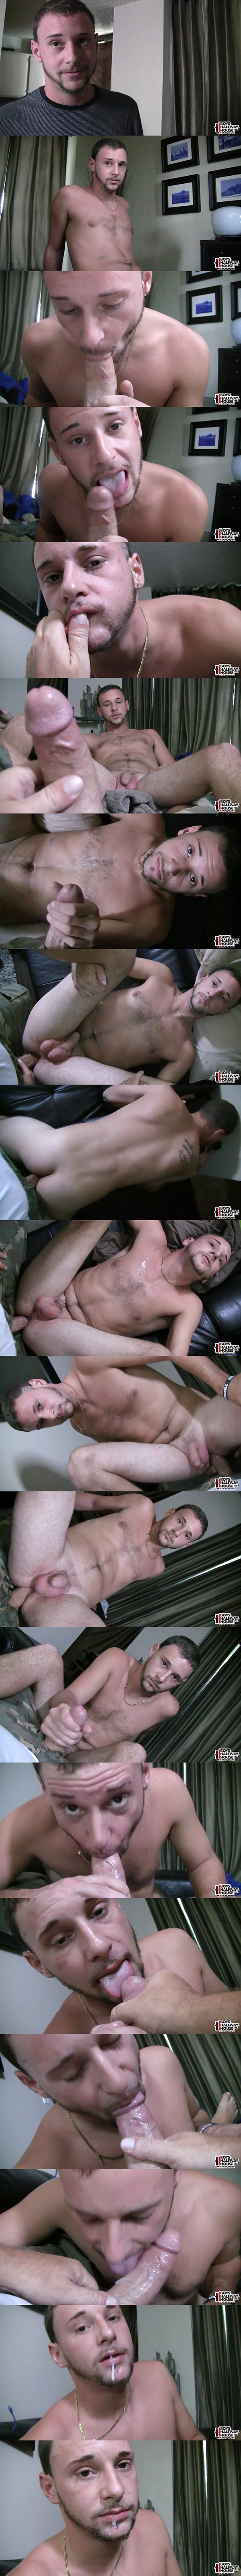 Cute straight jock Aaron gets his tight ass barebacked in Cracking Him Wide Open at Boyshalfwayhouse 02